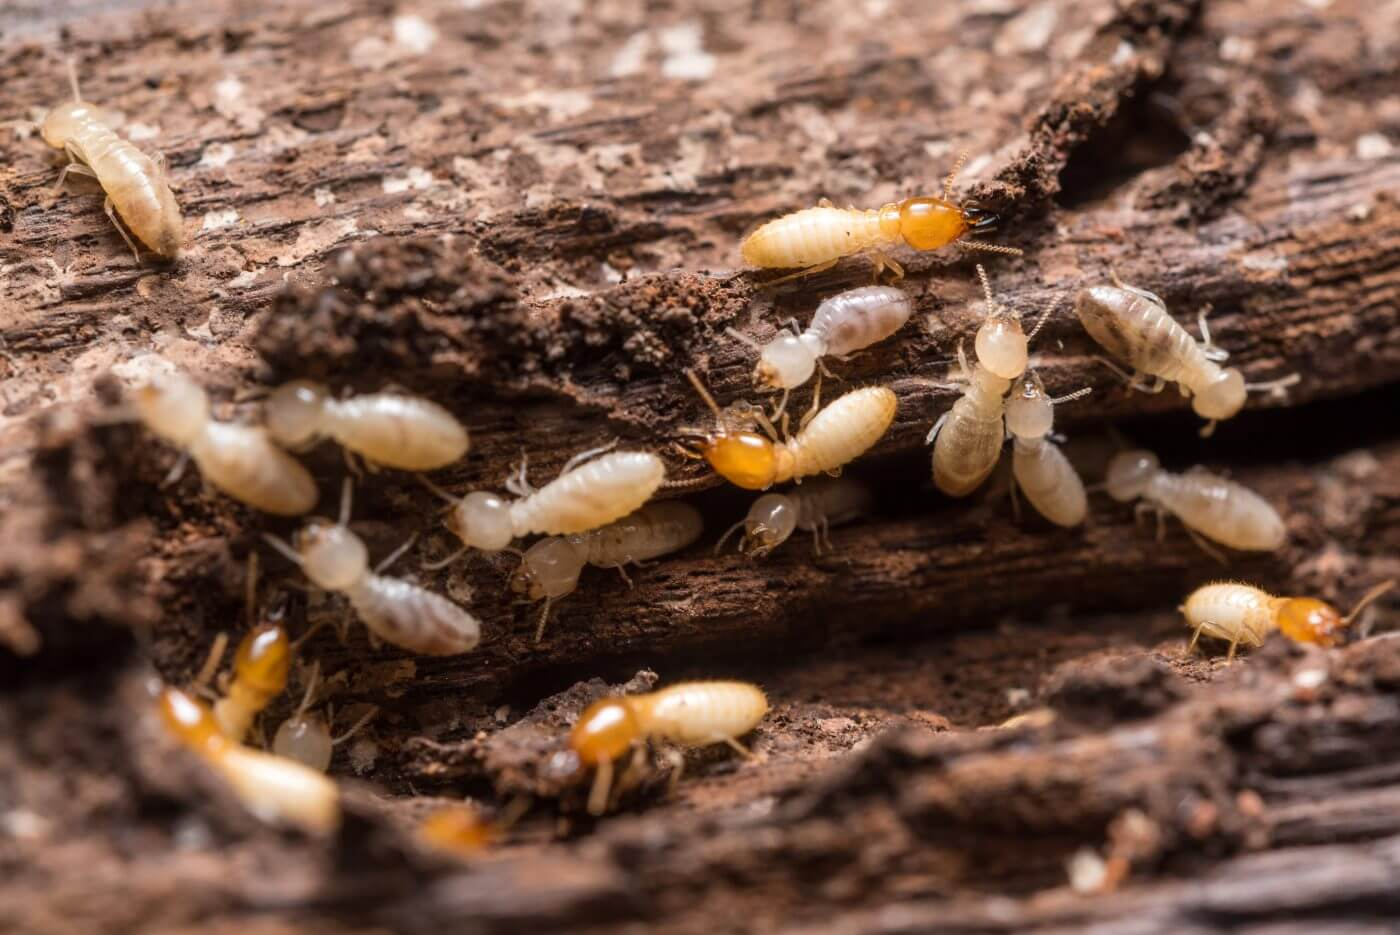 Termites eating away at wood